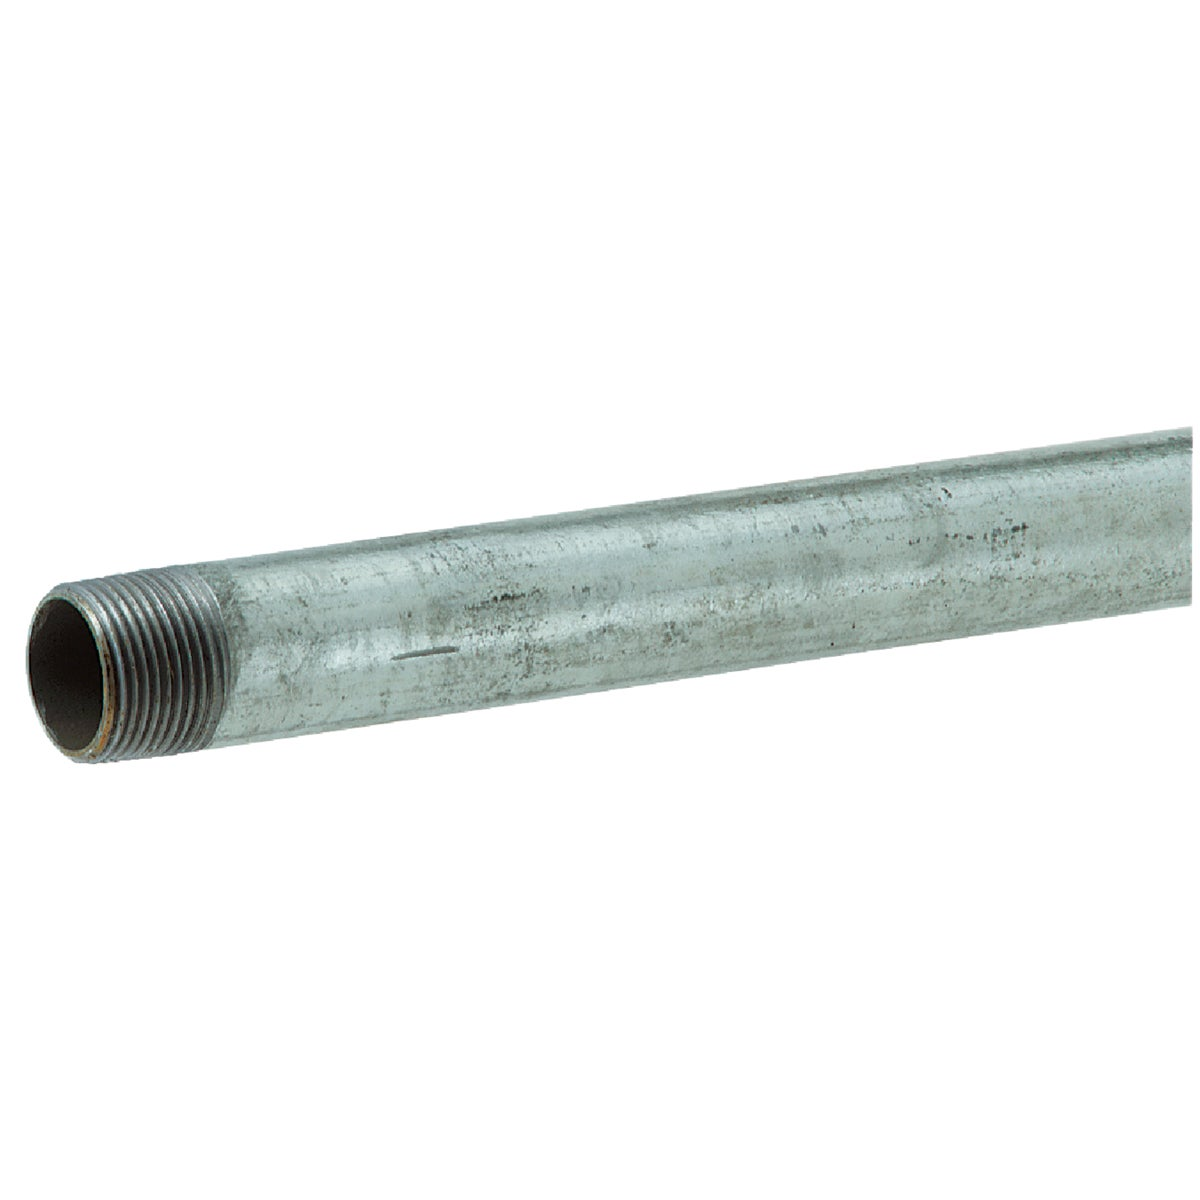 3/4X48 GALV RDI-CT PIPE